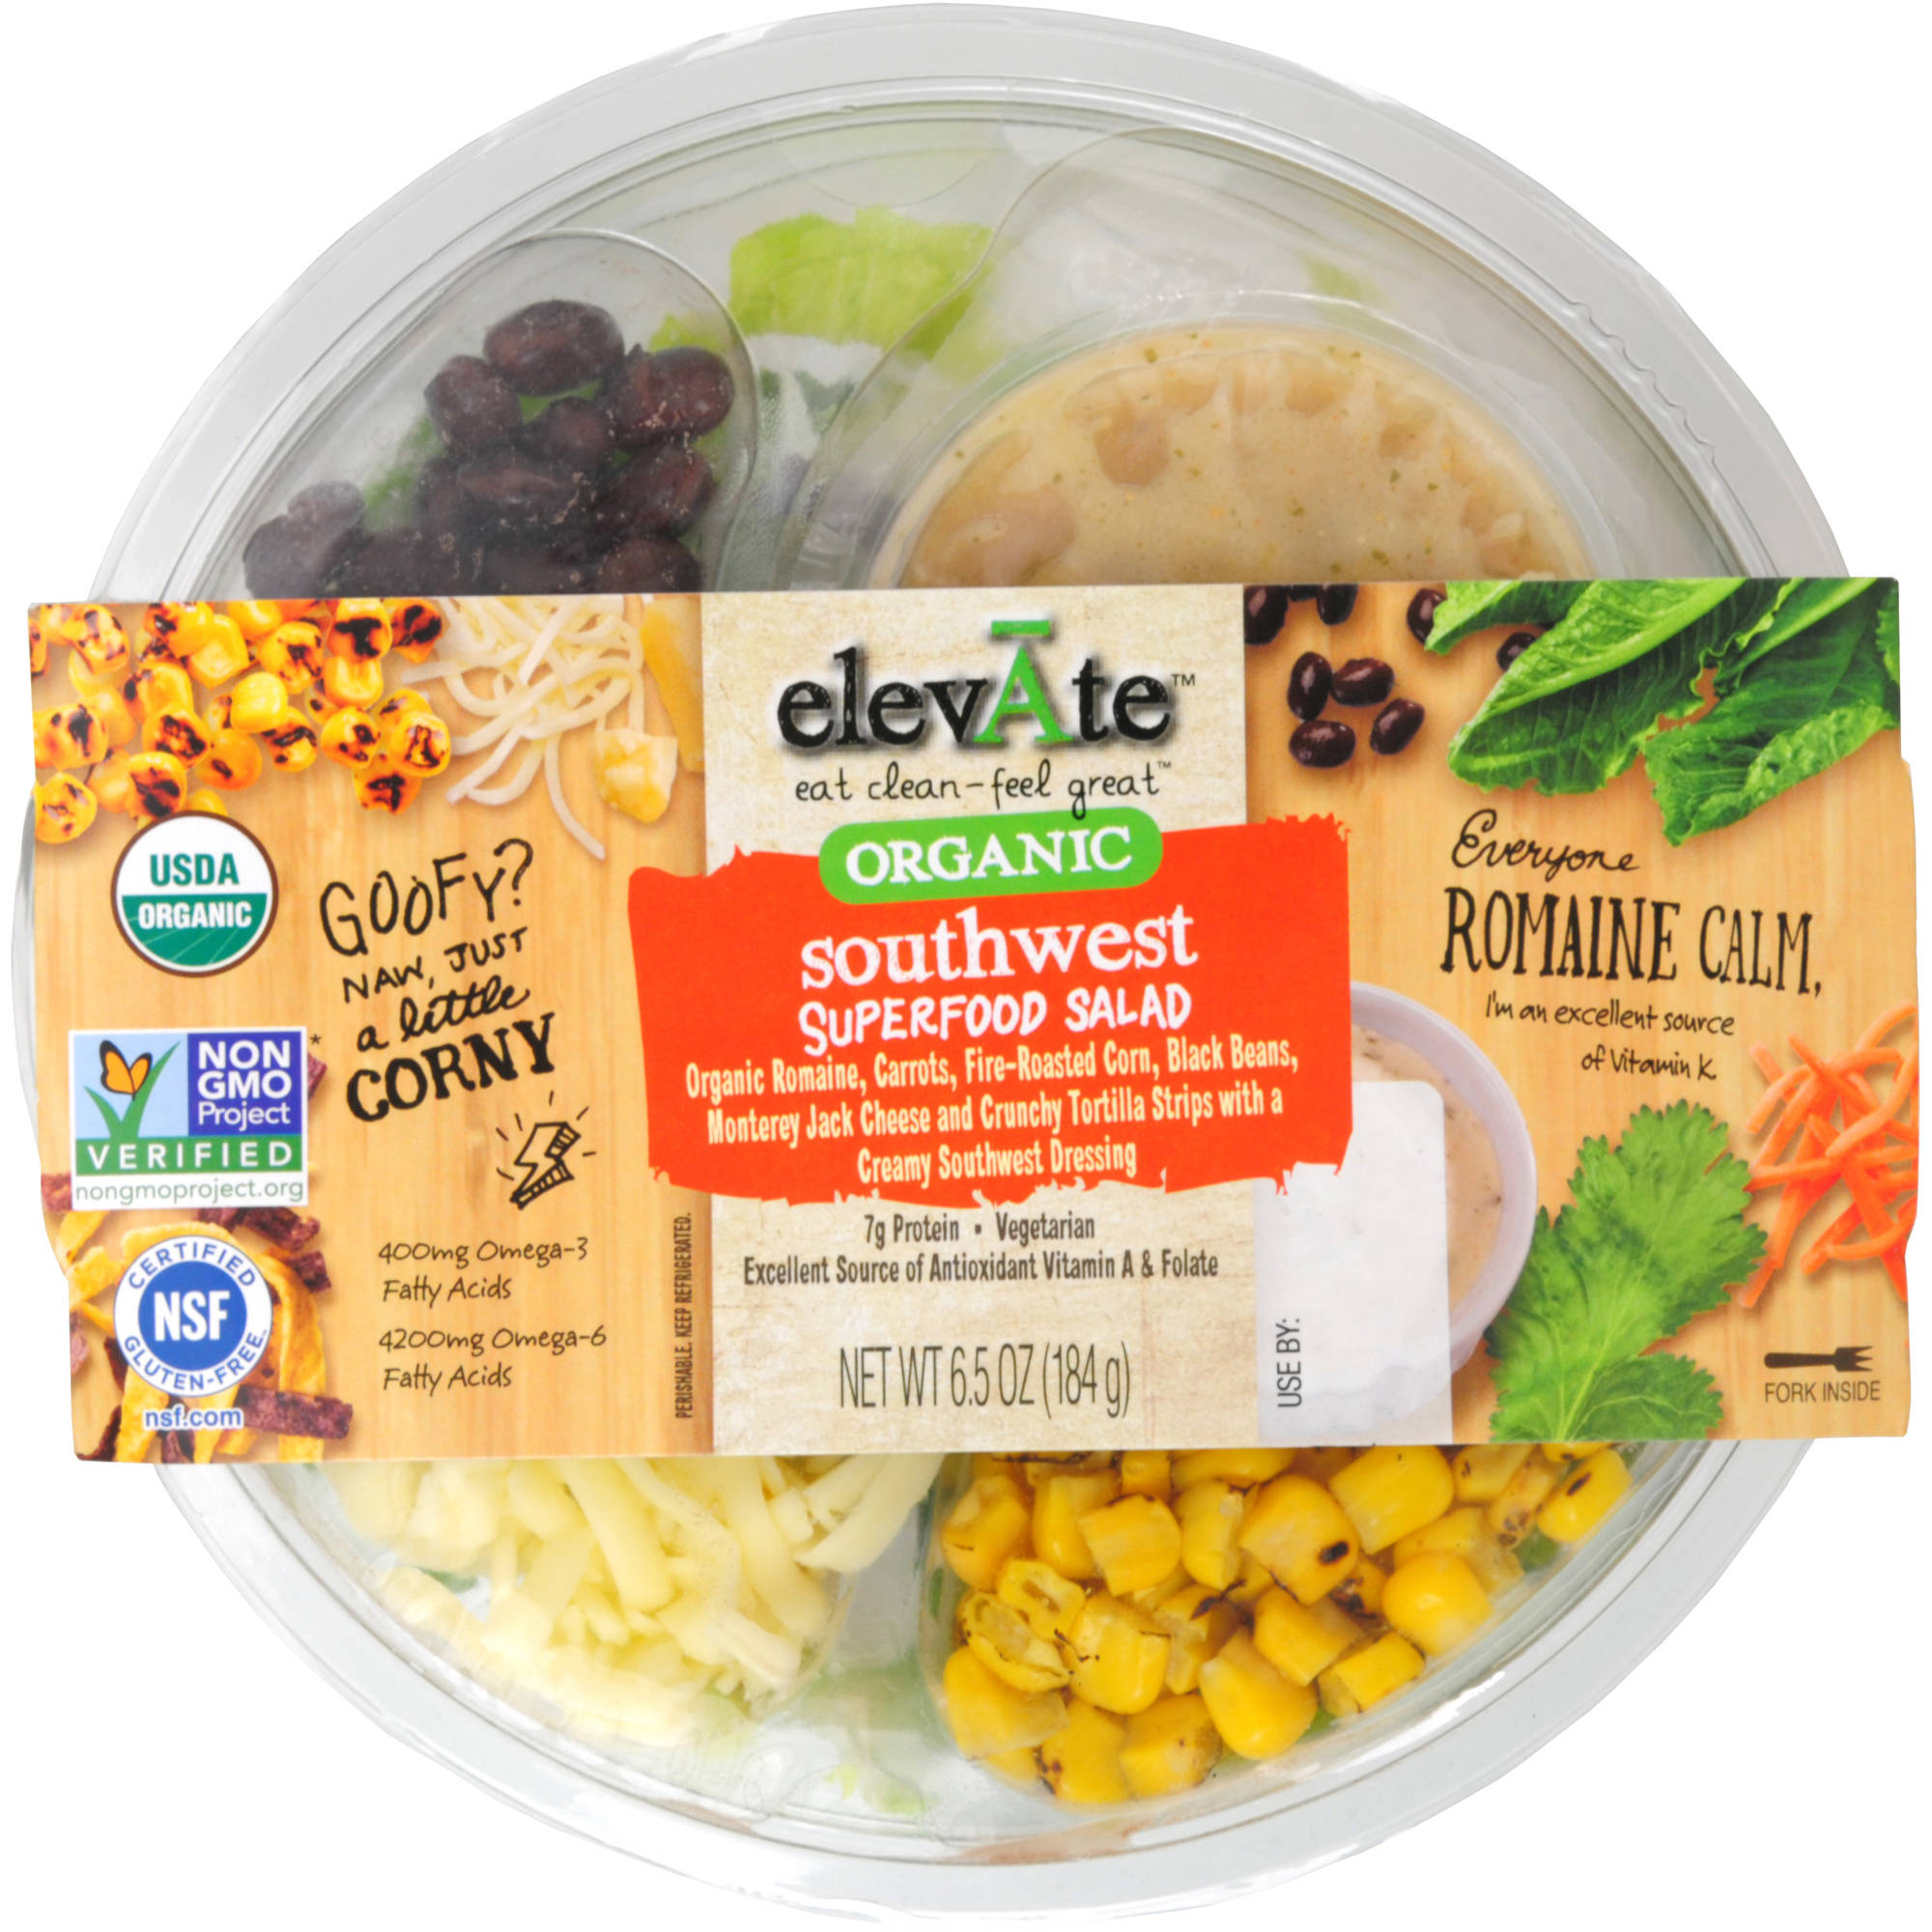 Elevate Organic Southwest Superfruit Salad